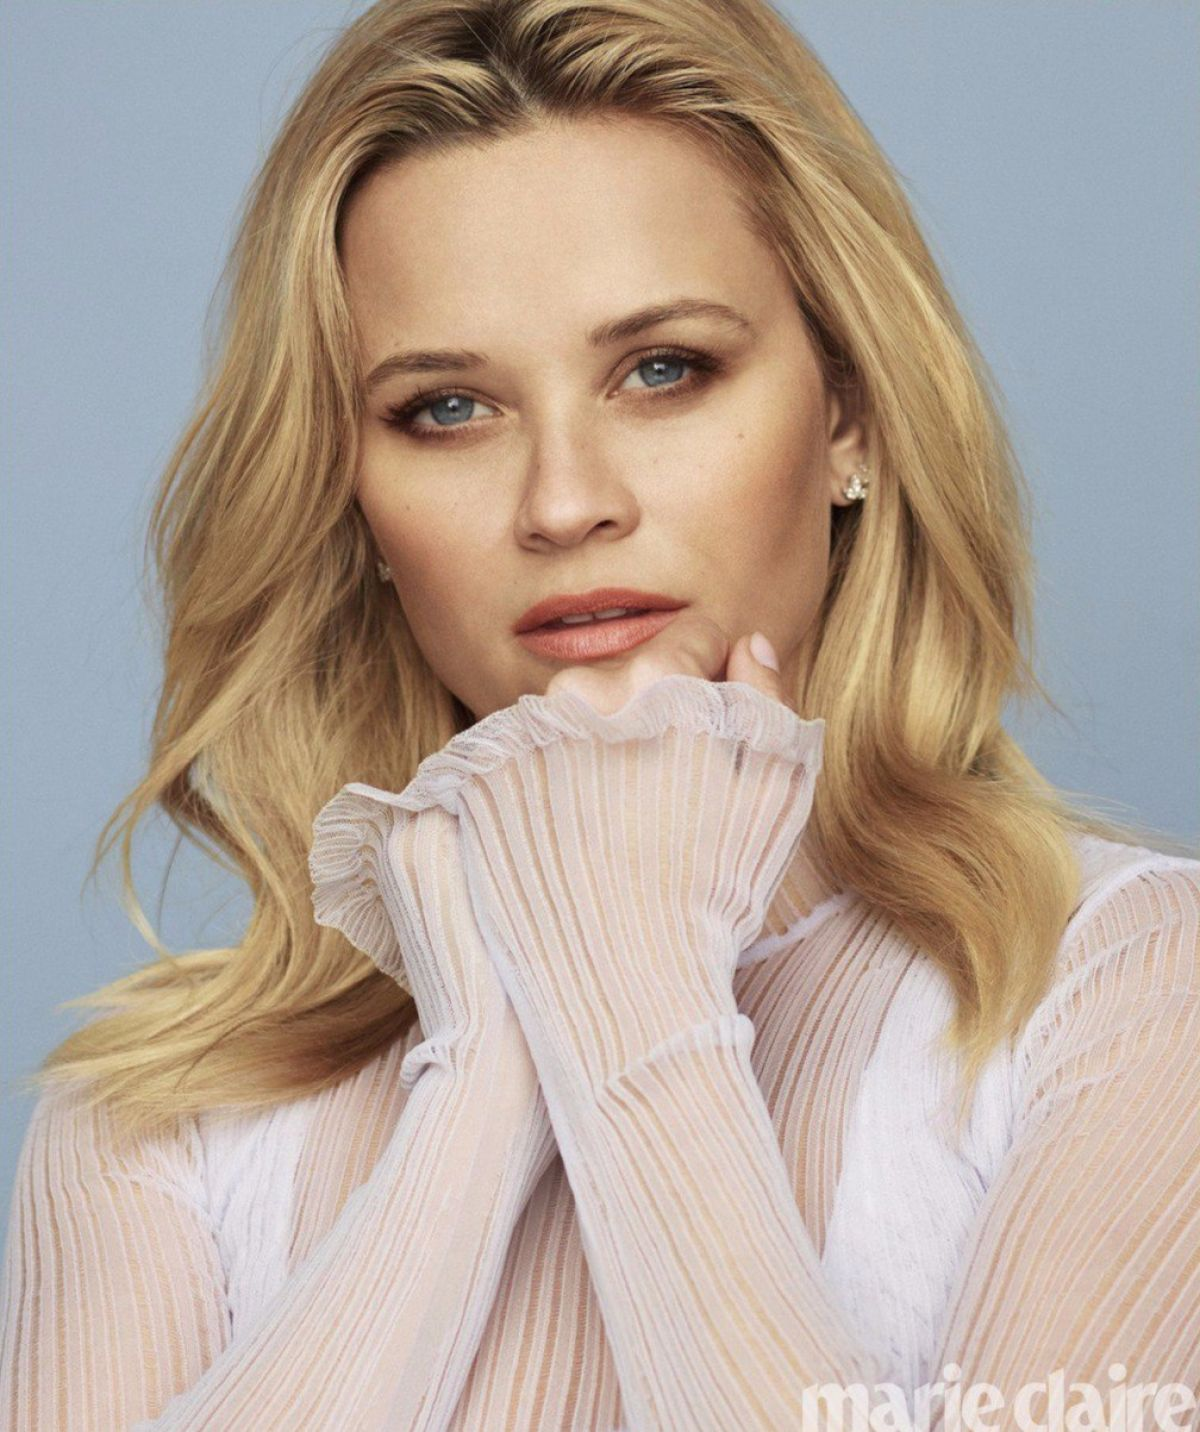 Reese Witherspoon photo #852732